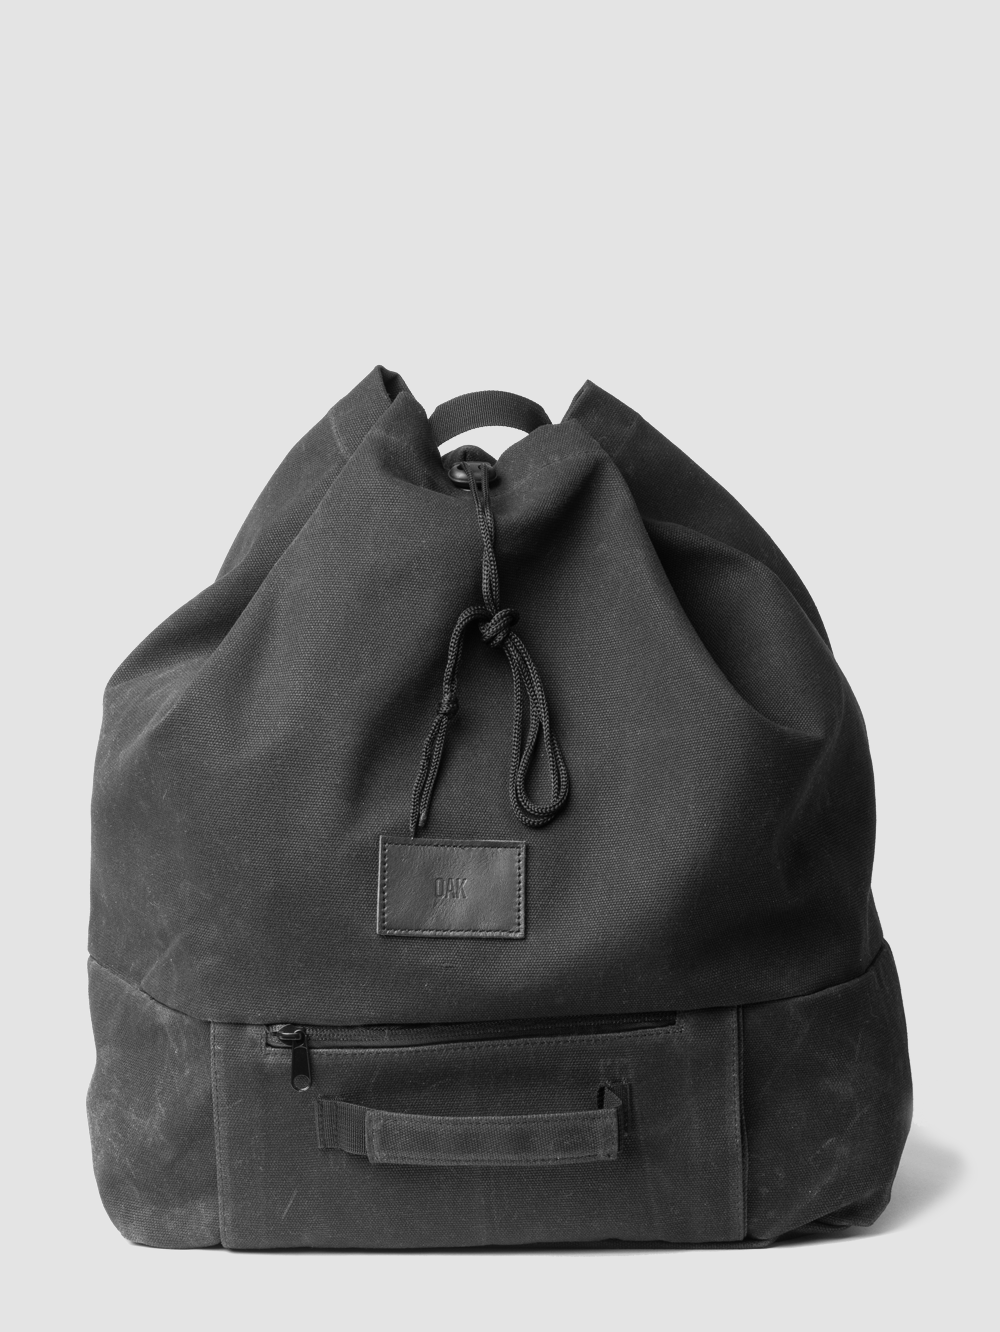 Oak Throop Backpack